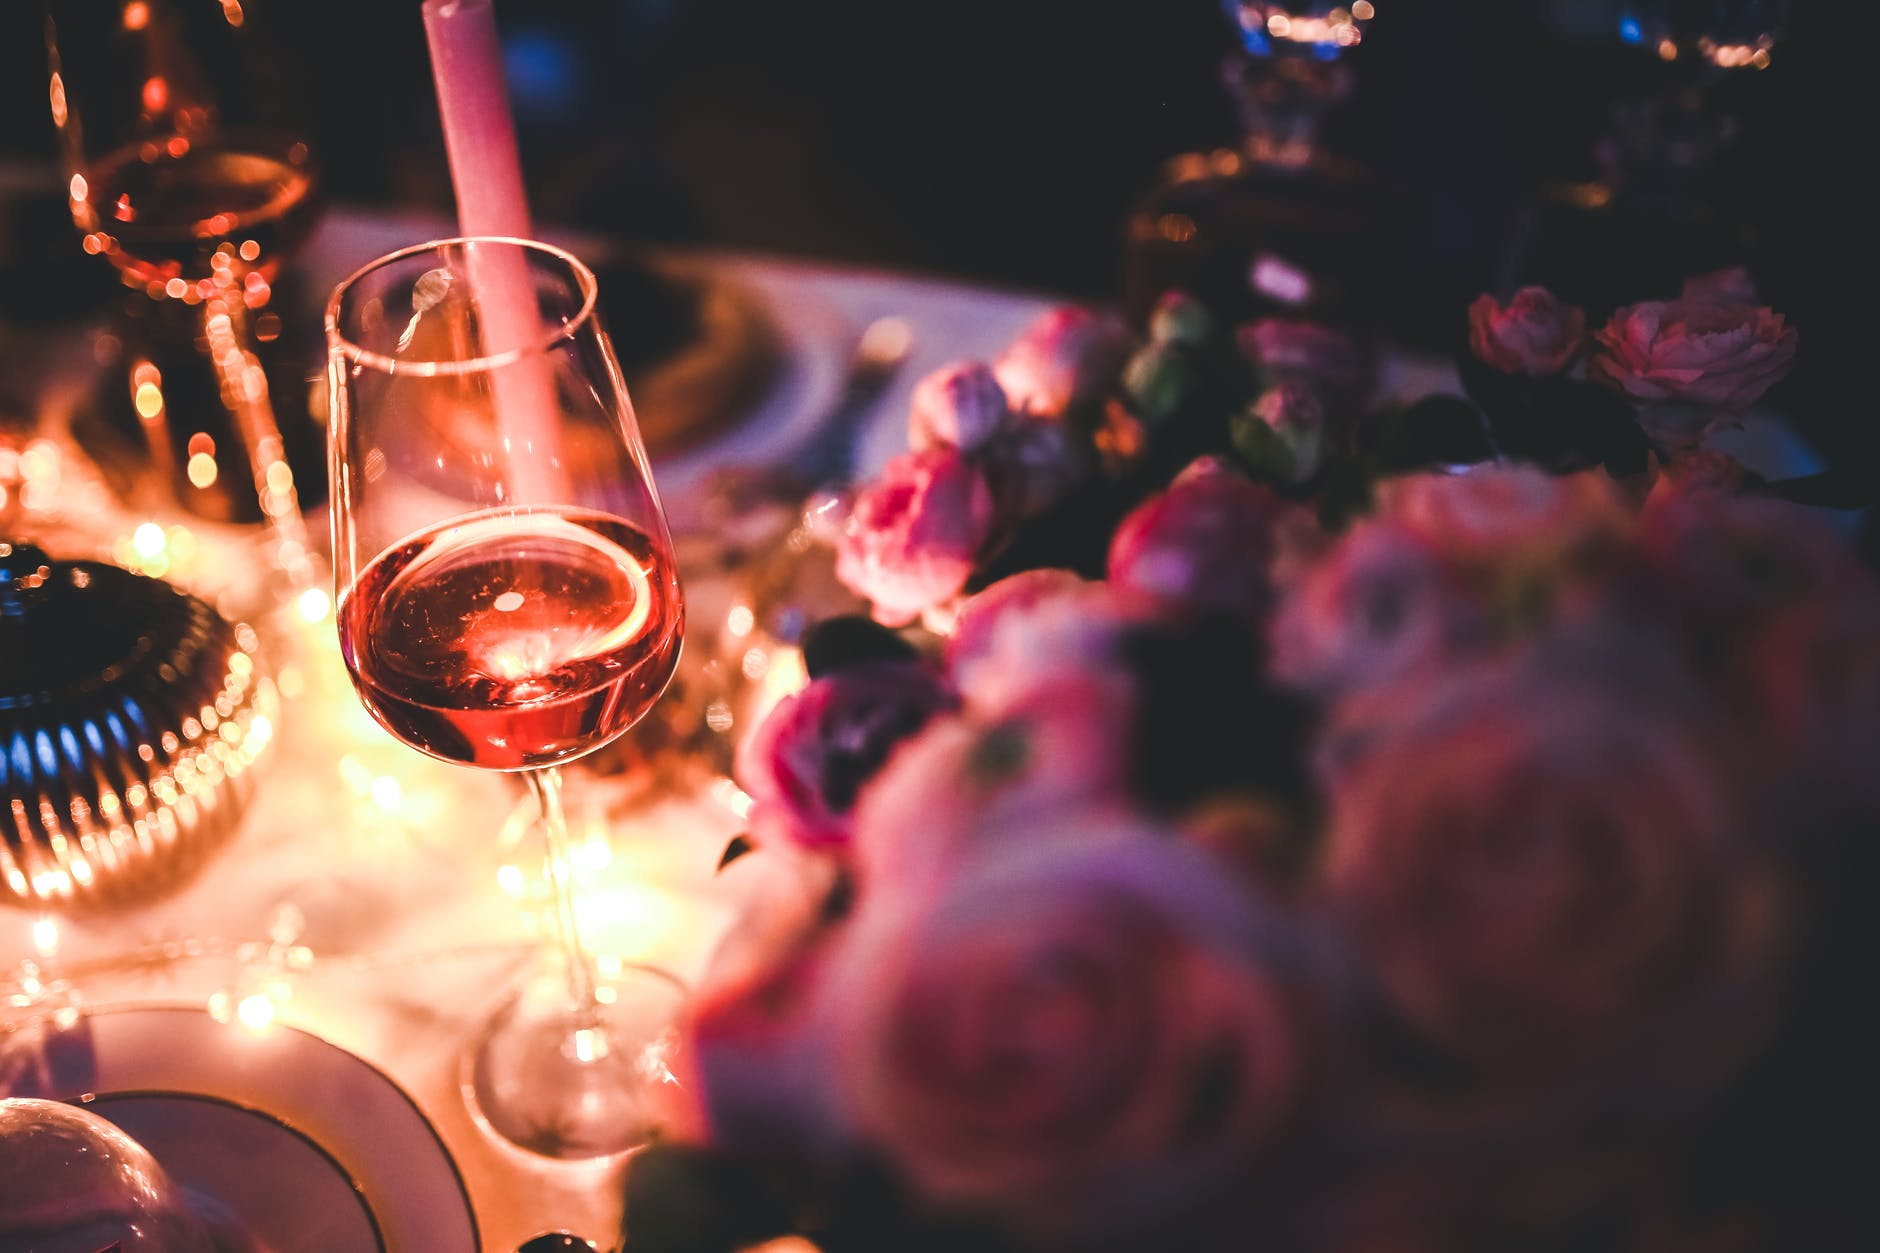 A glass of wine and roses